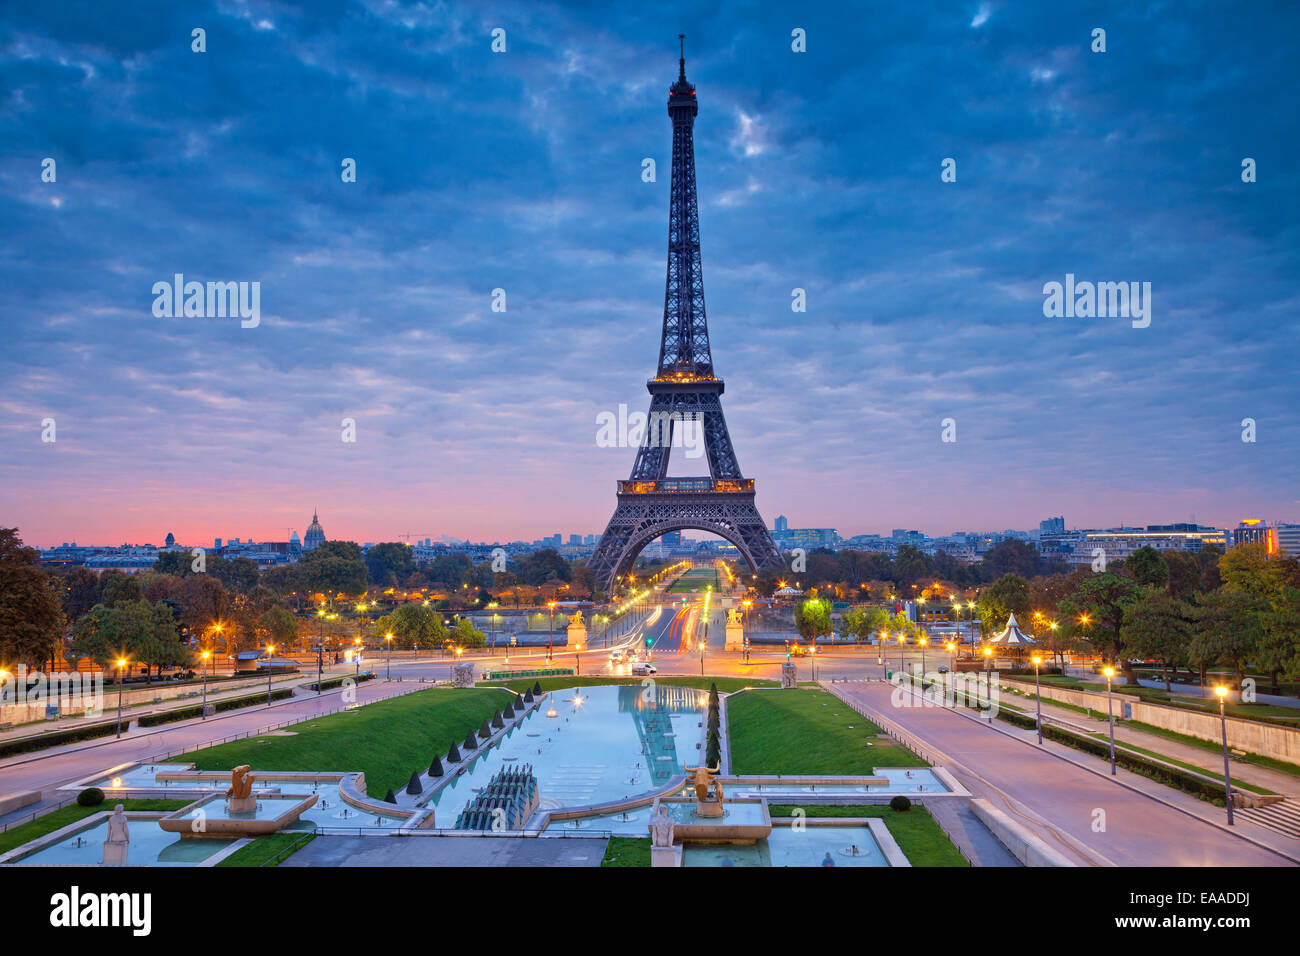 Tower photos tower images alamy - Images de la tour eiffel au coucher de soleil ...